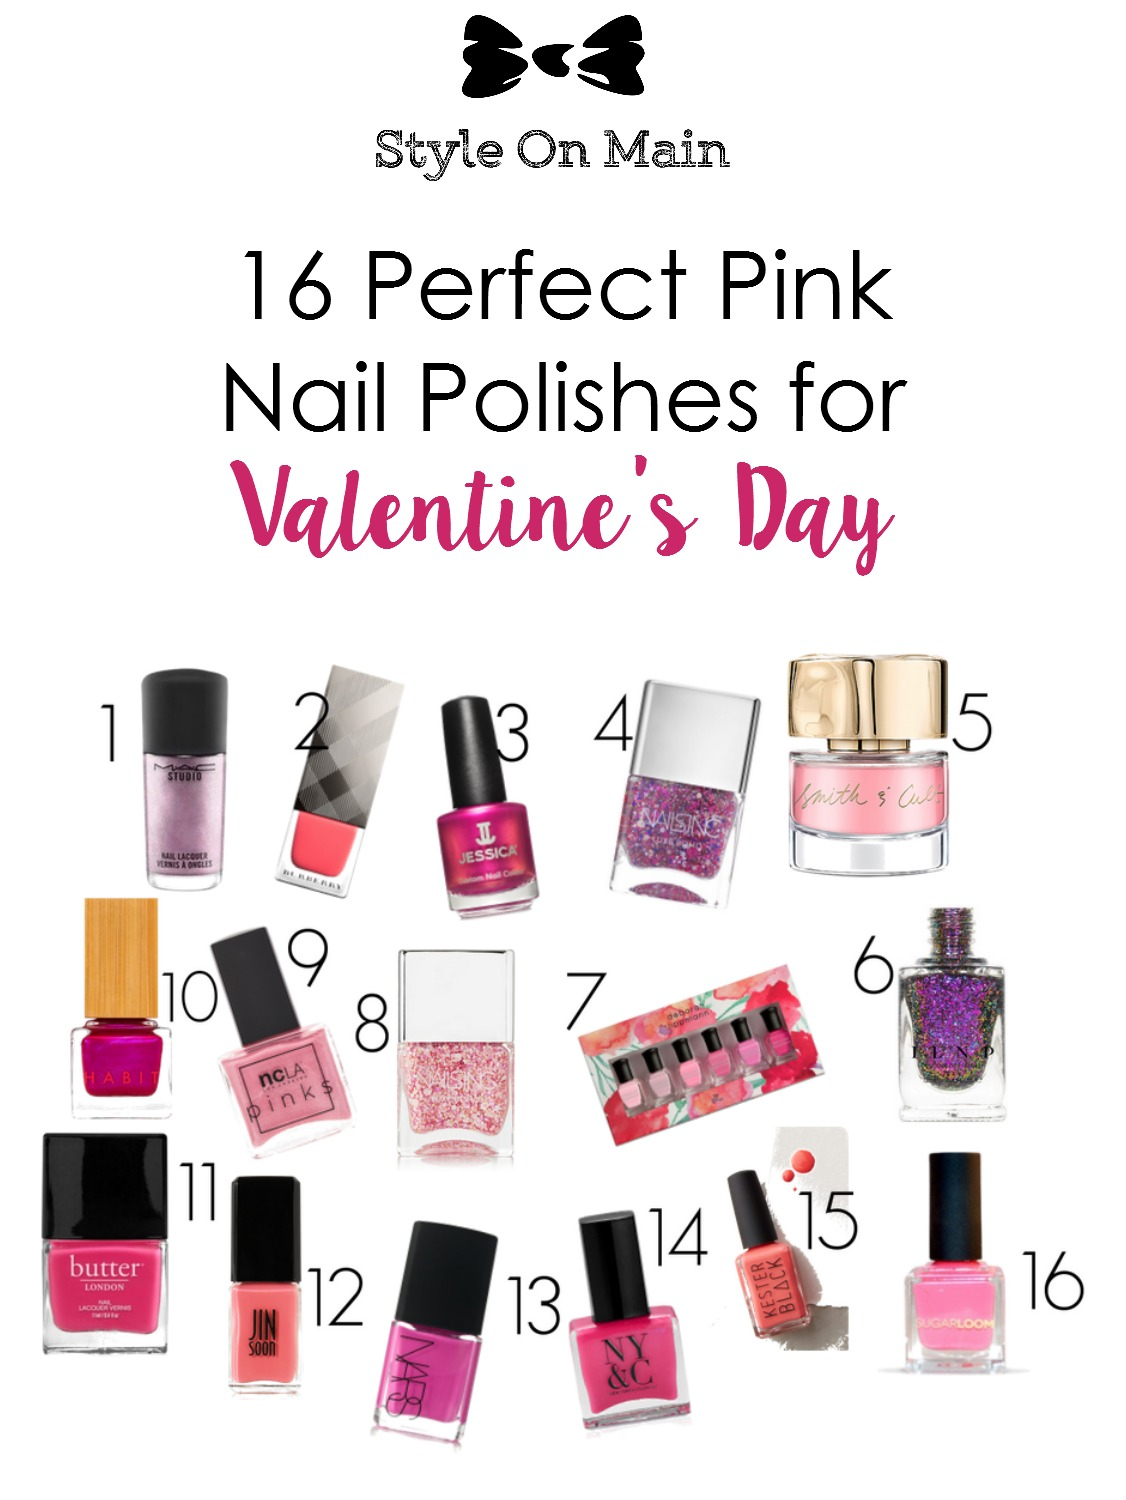 Gorgeous pink nail lacquers for valentine's day and beyond